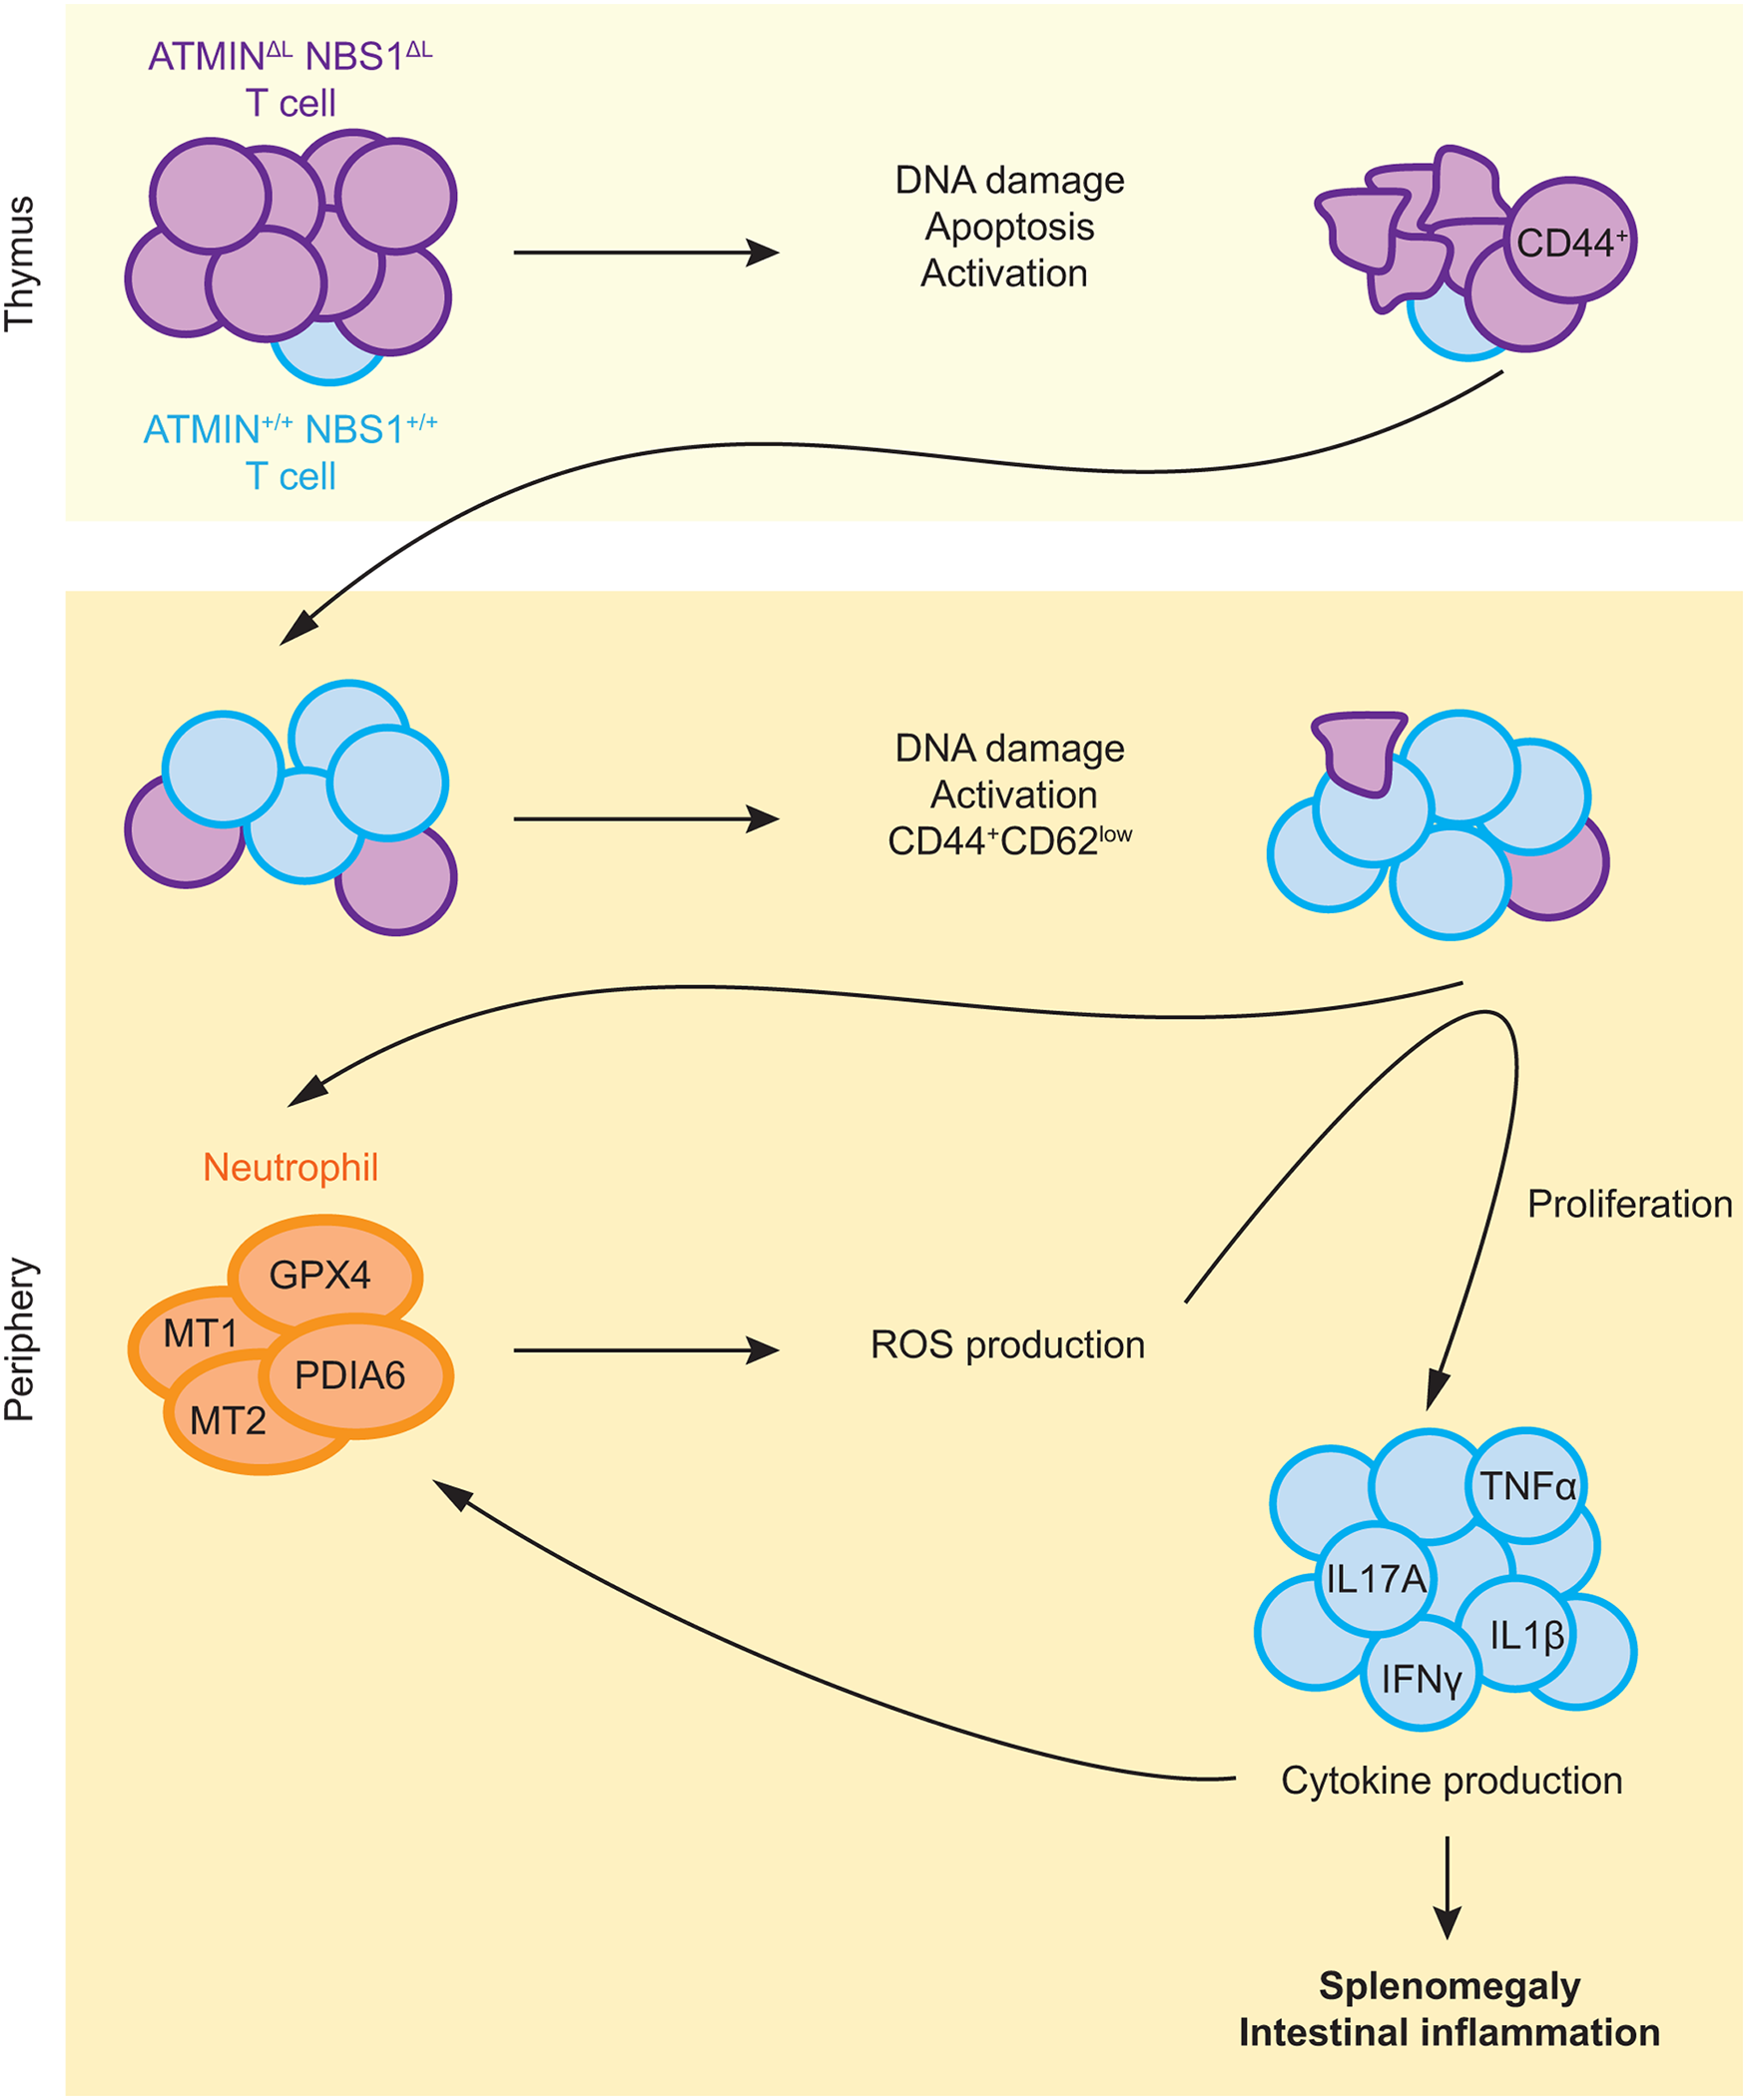 Model for the role of ATMIN and NBS1 in suppressing T cell activation and inflammation.